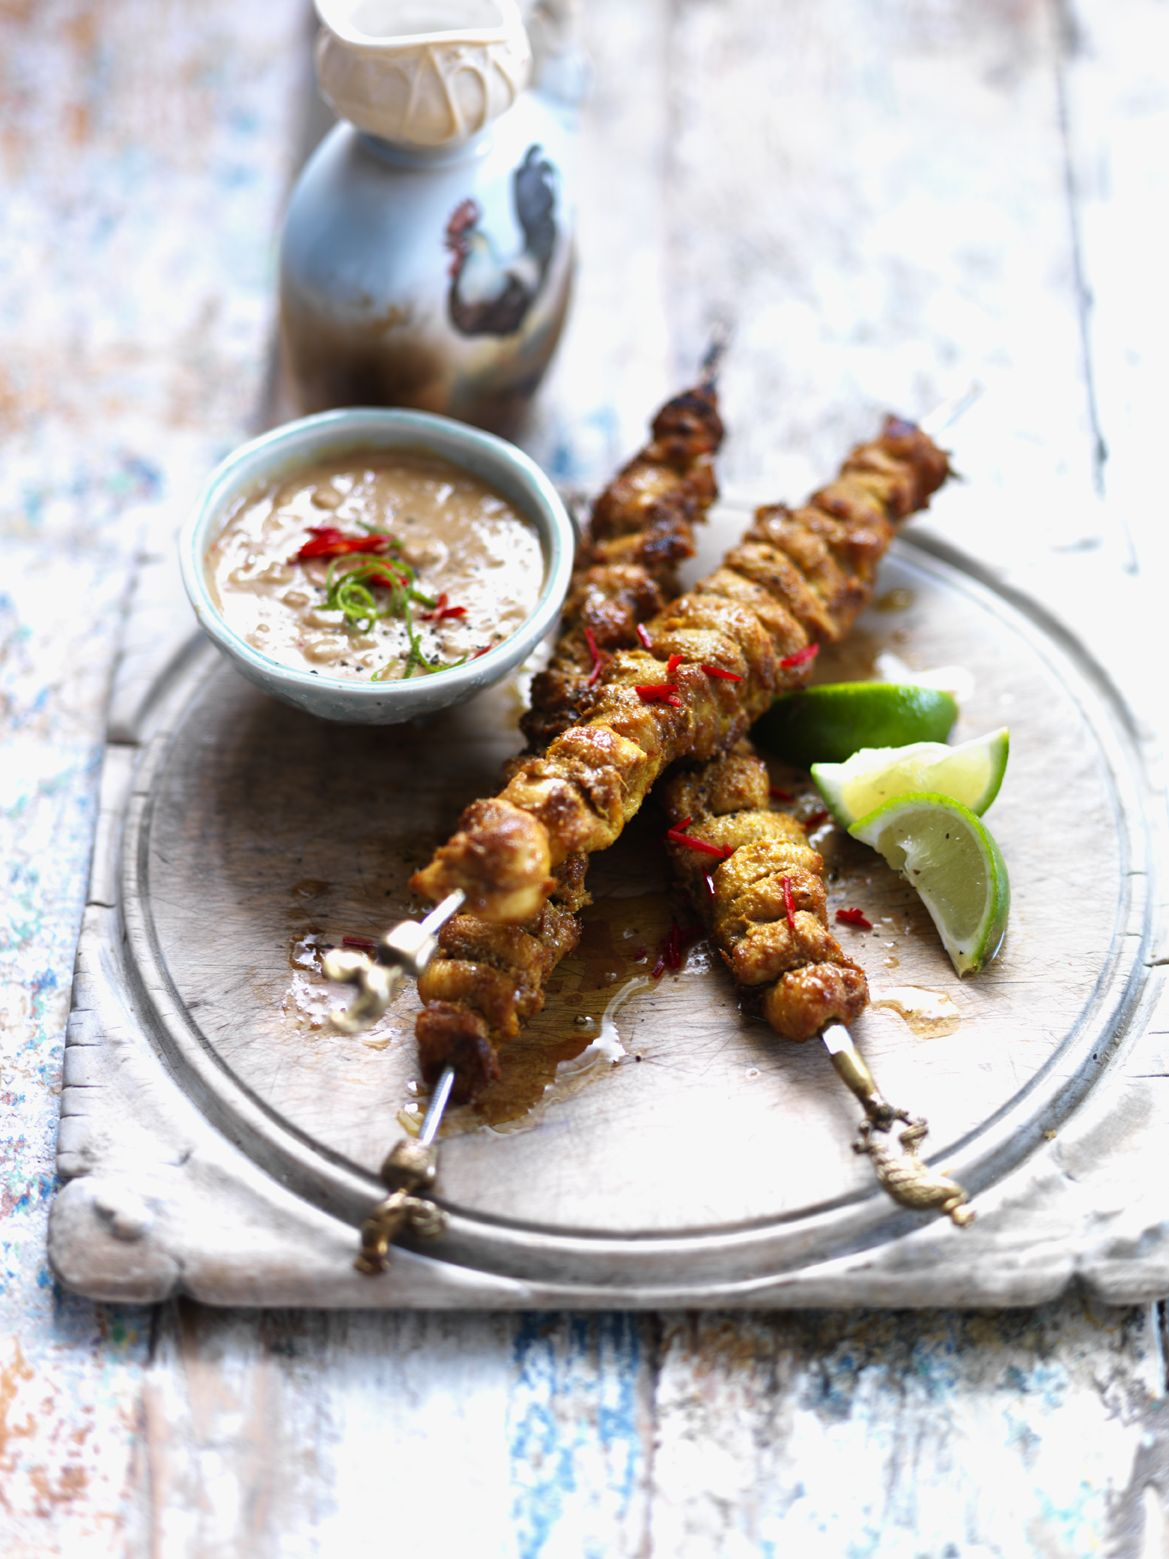 More satay recipes here httpsainsburysmagazineblog more satay recipes here httpsainsburysmagazineblog restaurantsitemgizzi forumfinder Gallery